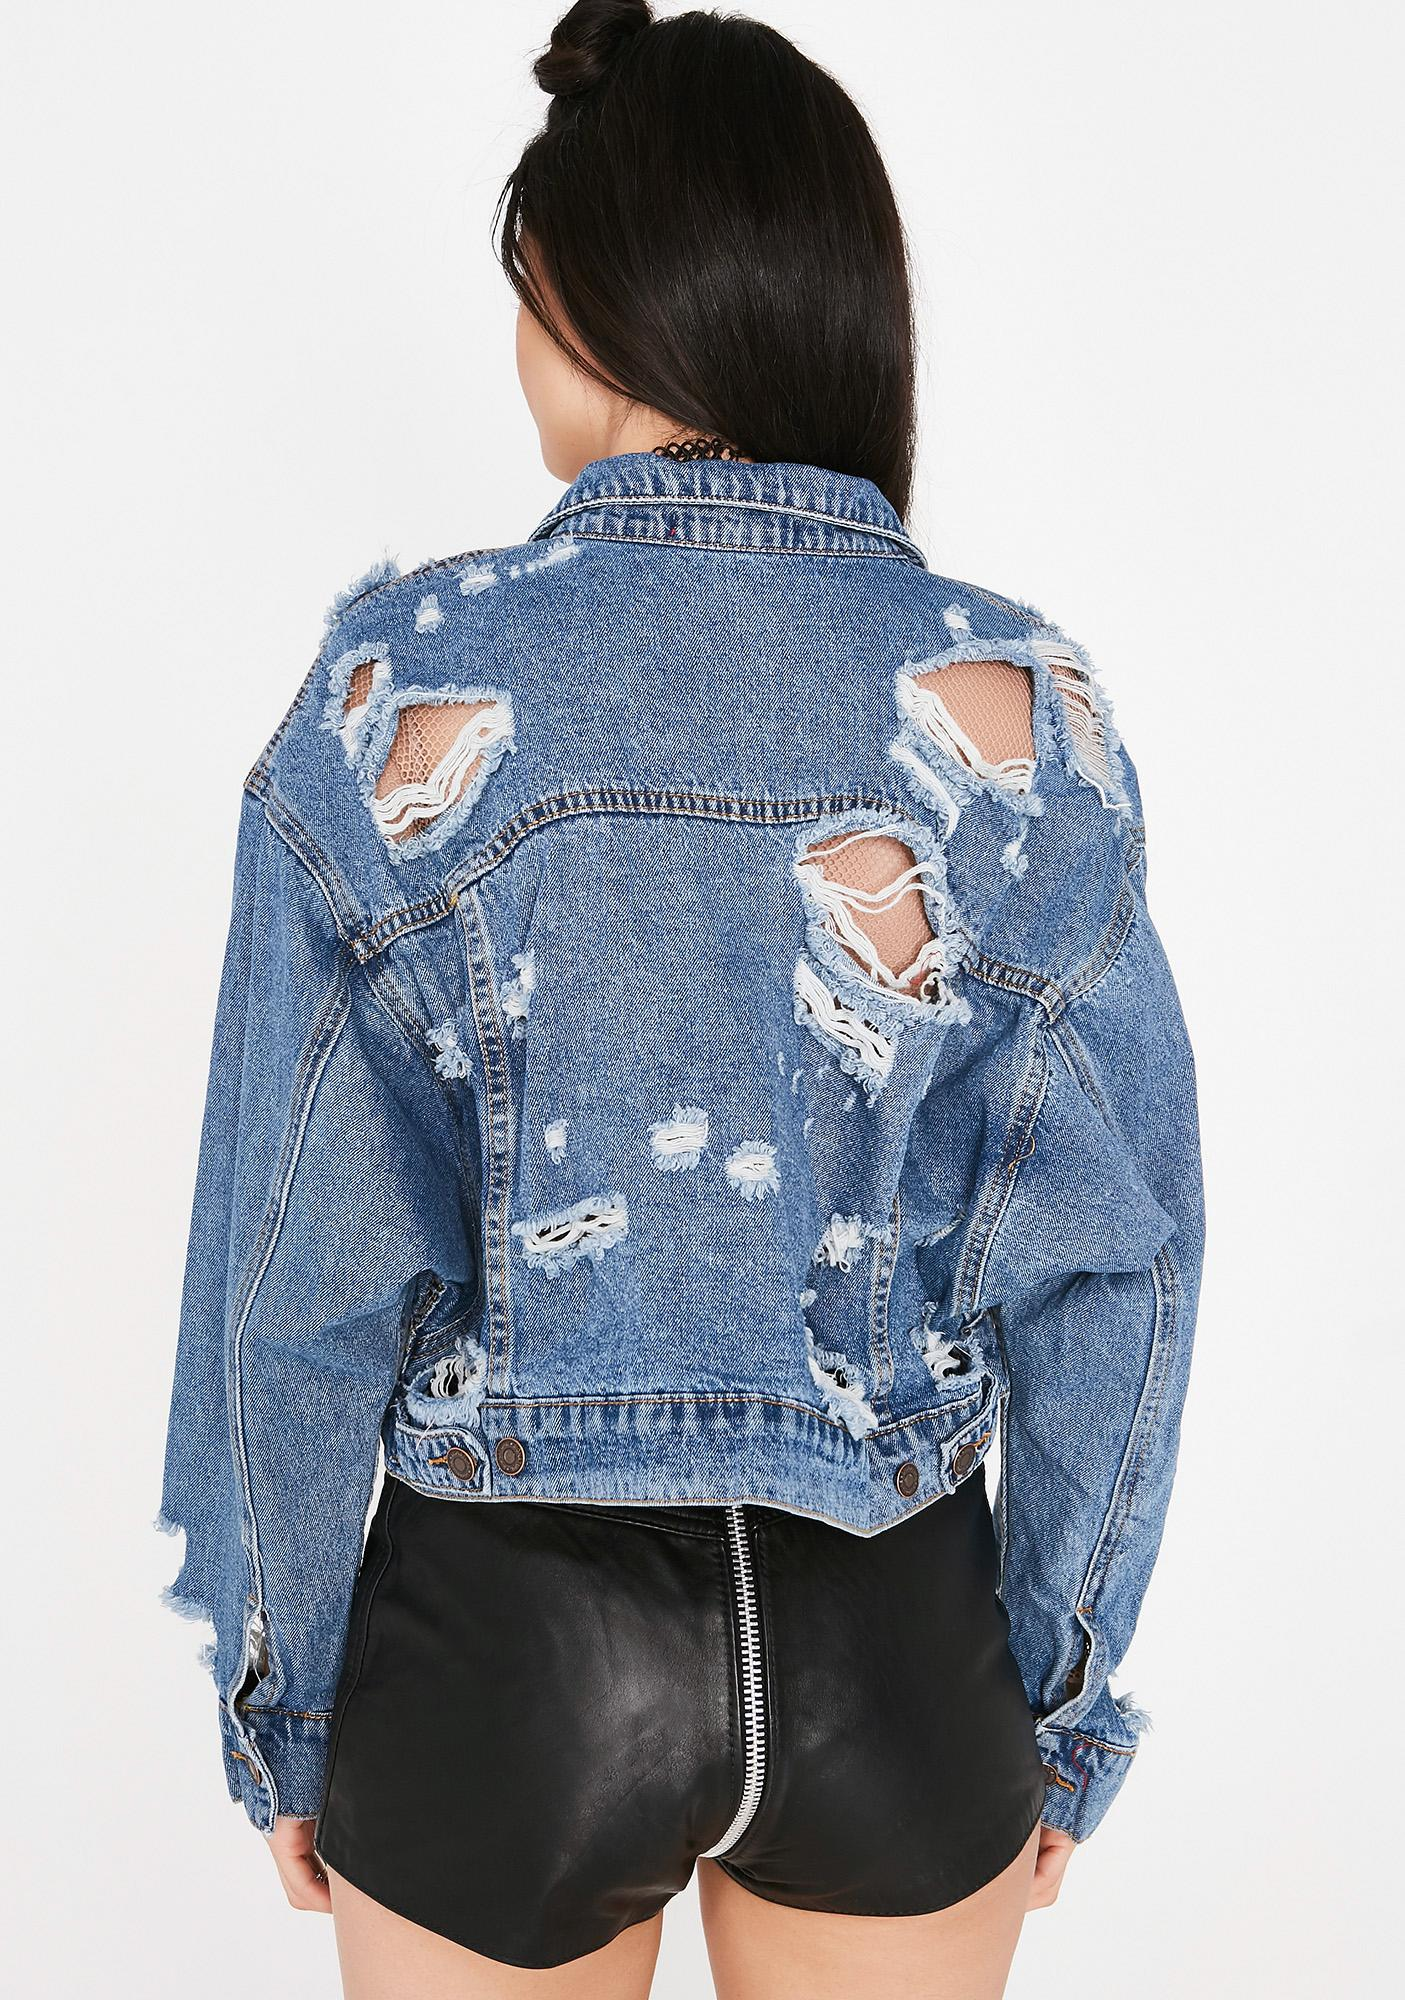 Heartless Human Denim Jacket